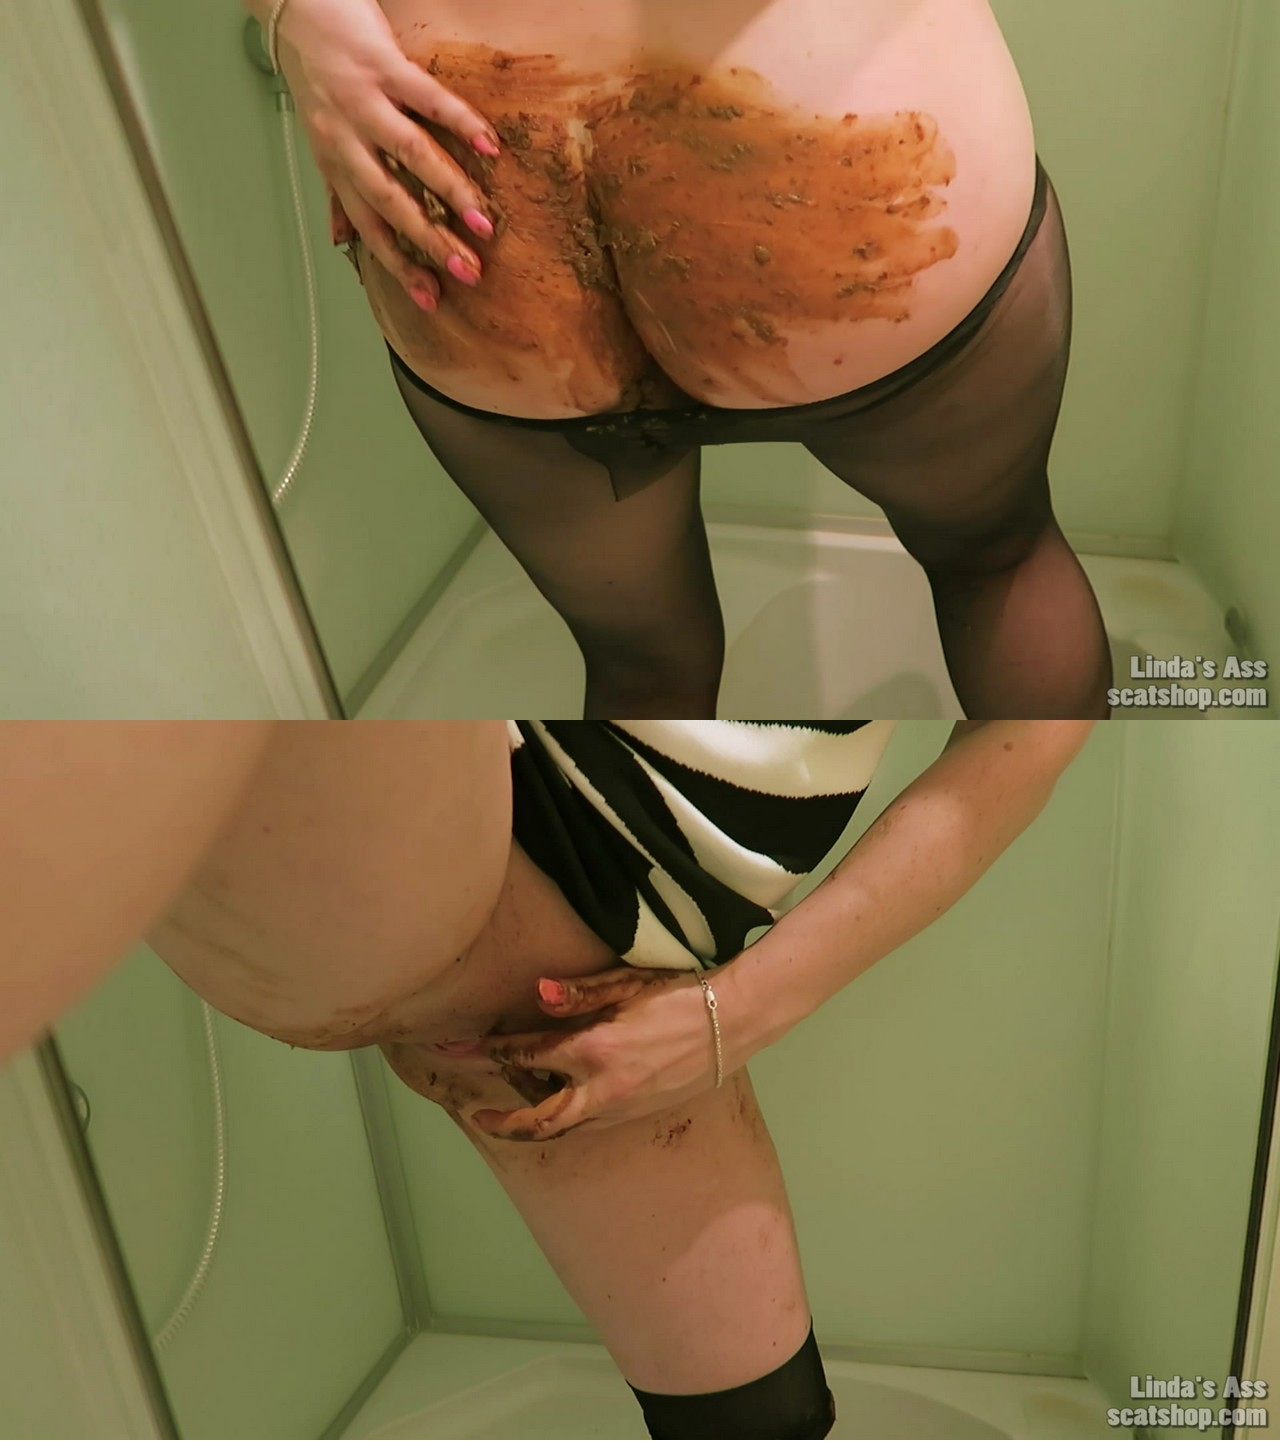 Shower poop smear and lick starring in video sexyass ($14.99 ScatShop) – Farting